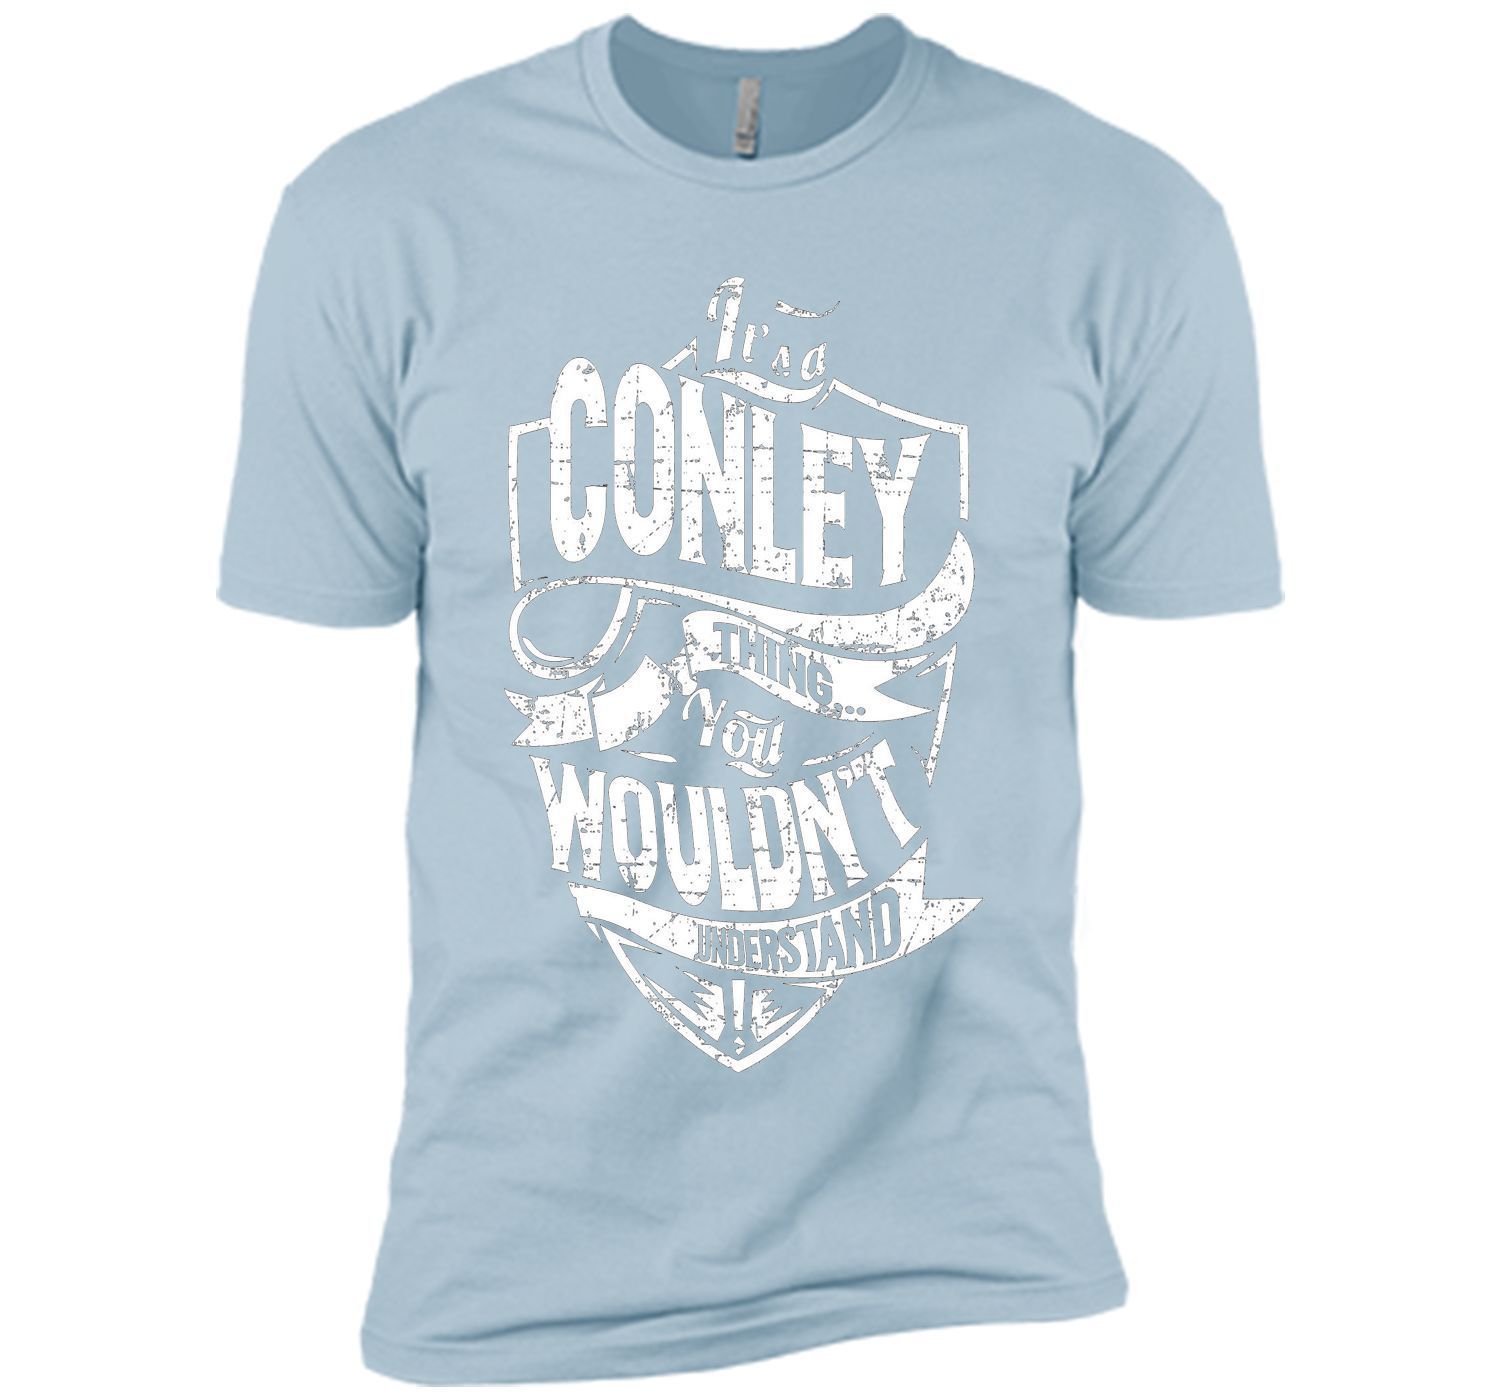 It's A Conley Thing You Wouldn't Understand T-Shirt cool shirt